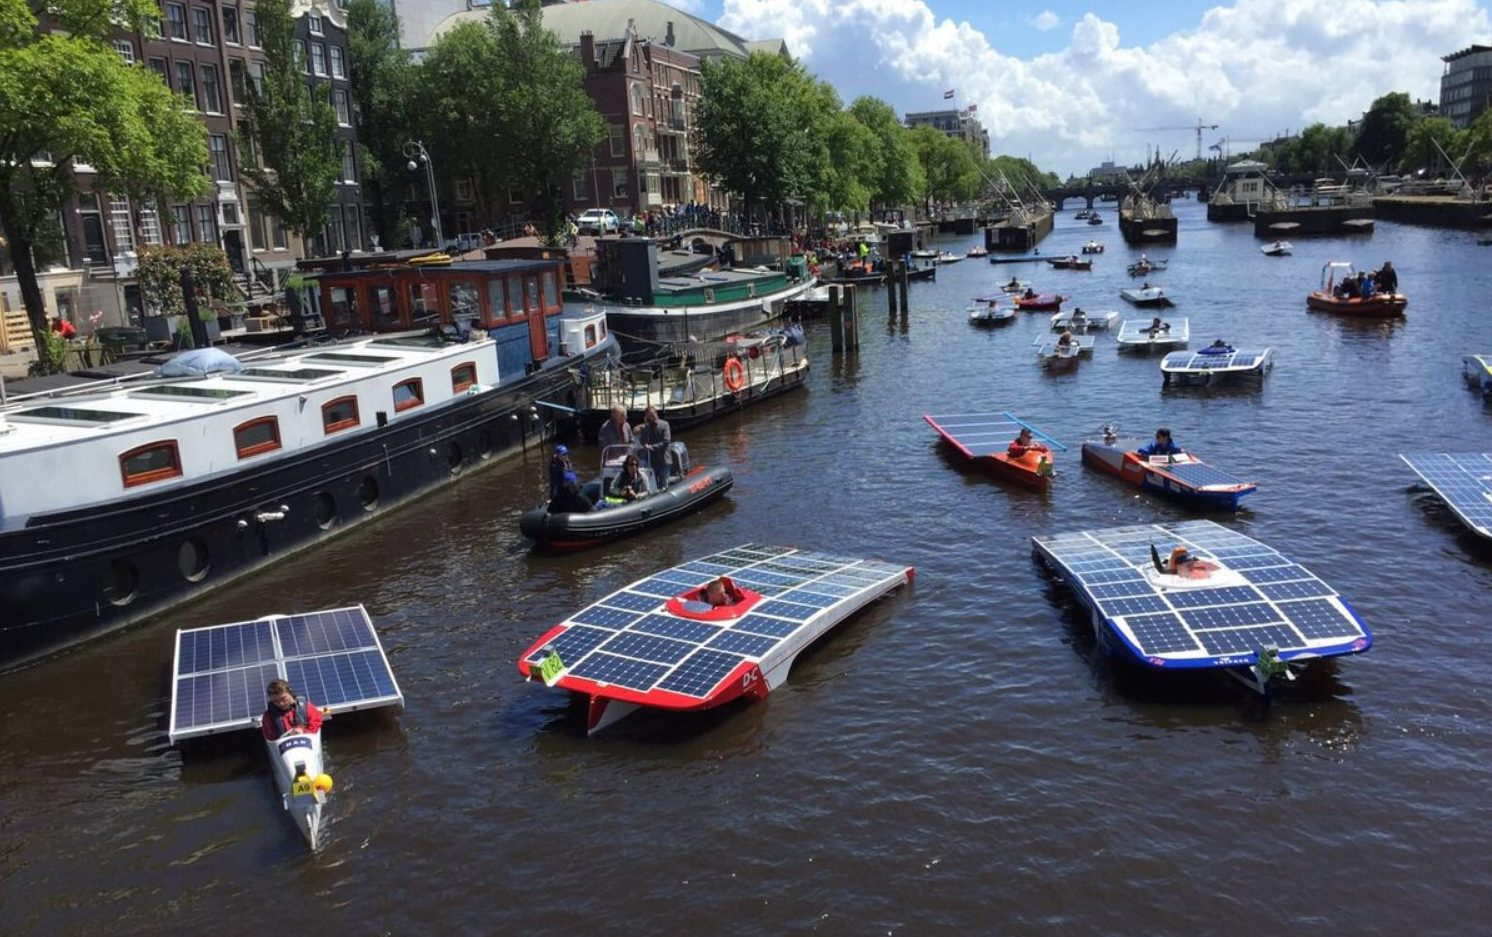 The Dutch Solar Challenge: World Solar Boat Championship